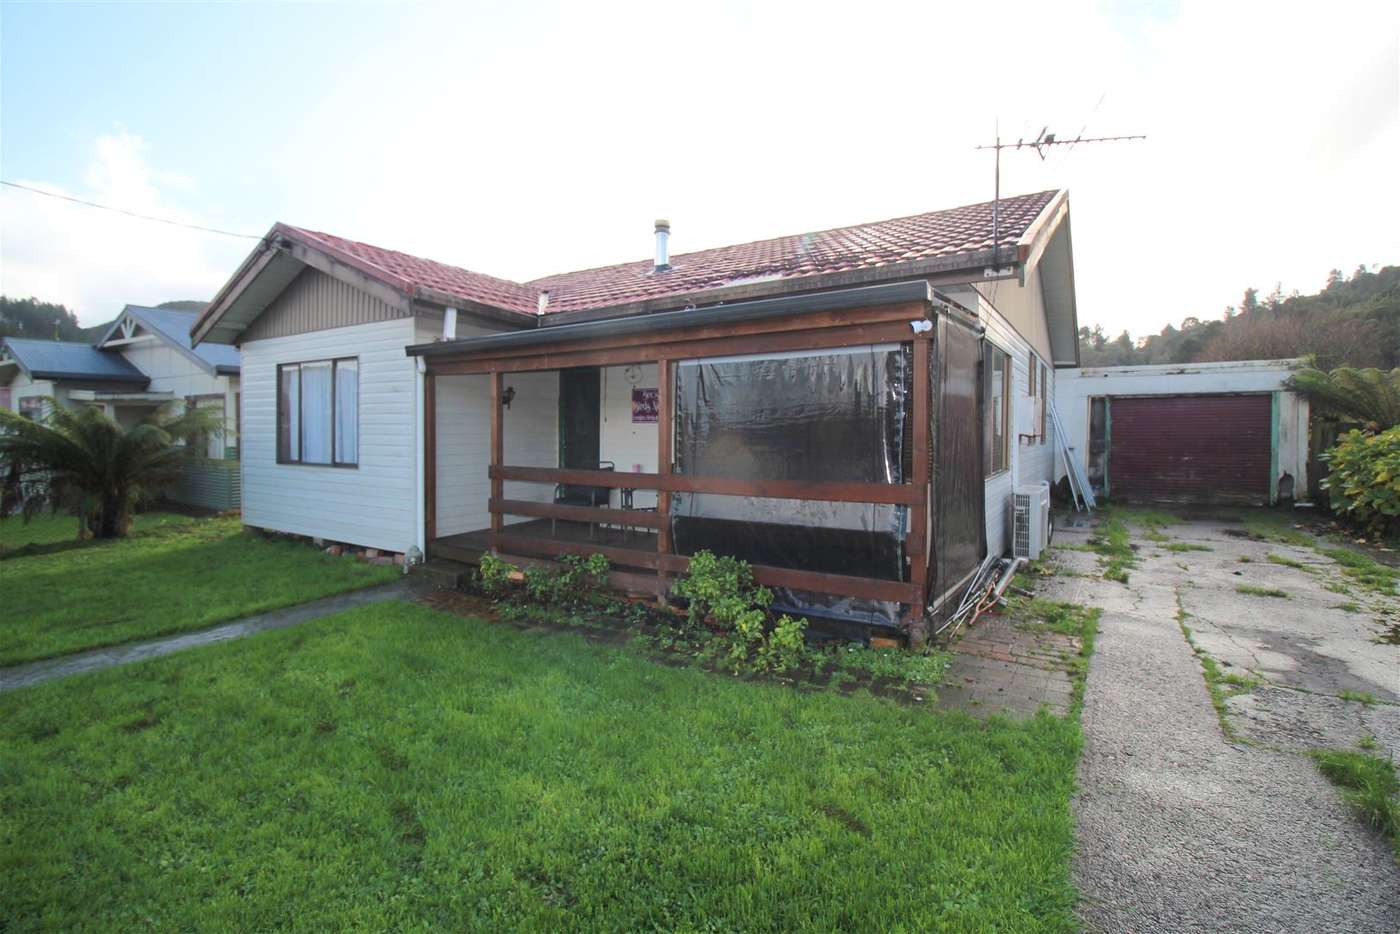 Main view of Homely house listing, 3 Hurst Street, Queenstown TAS 7467